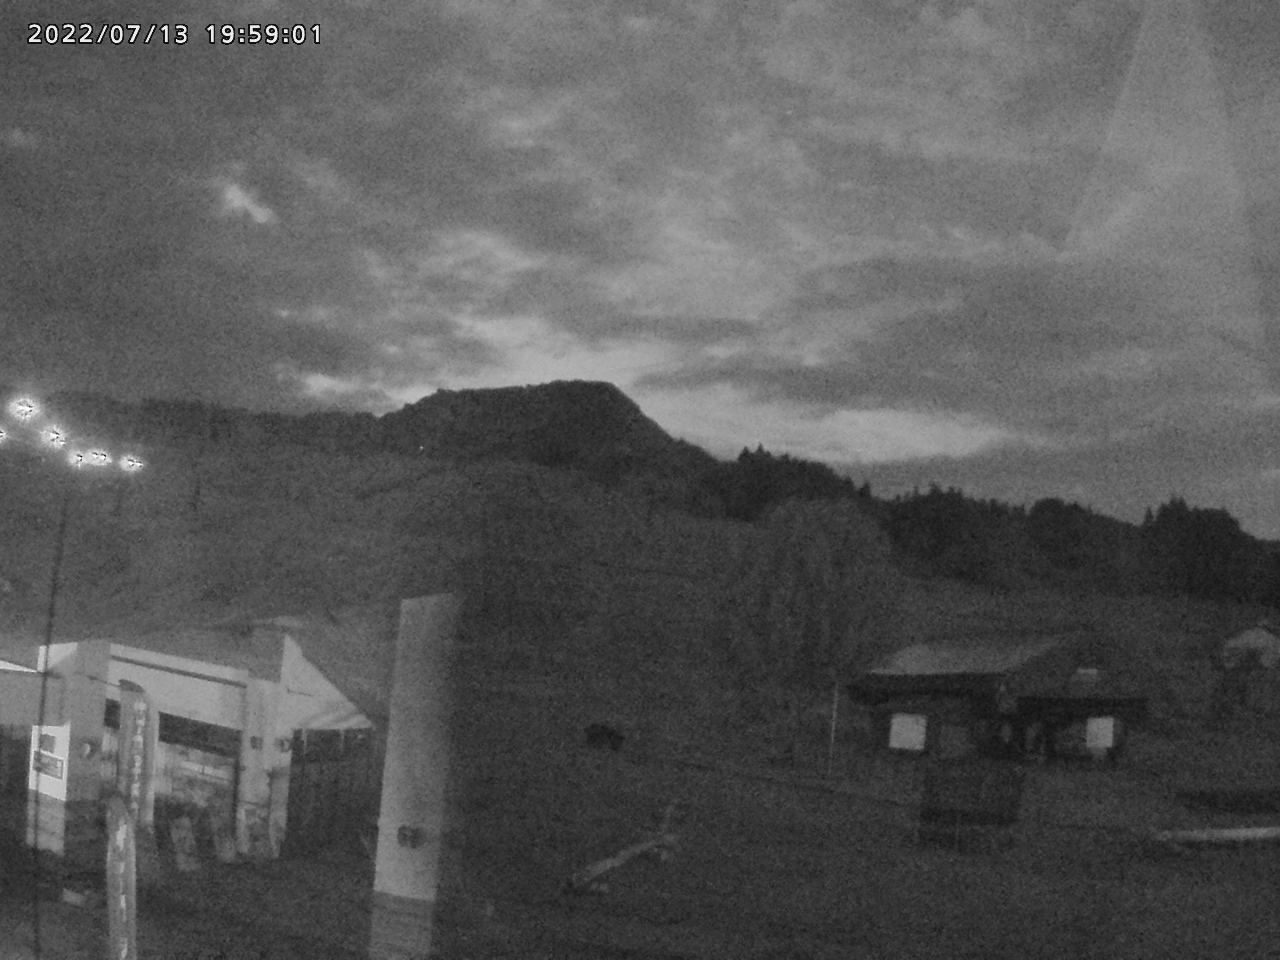 Cupid Valley Ski Webcam